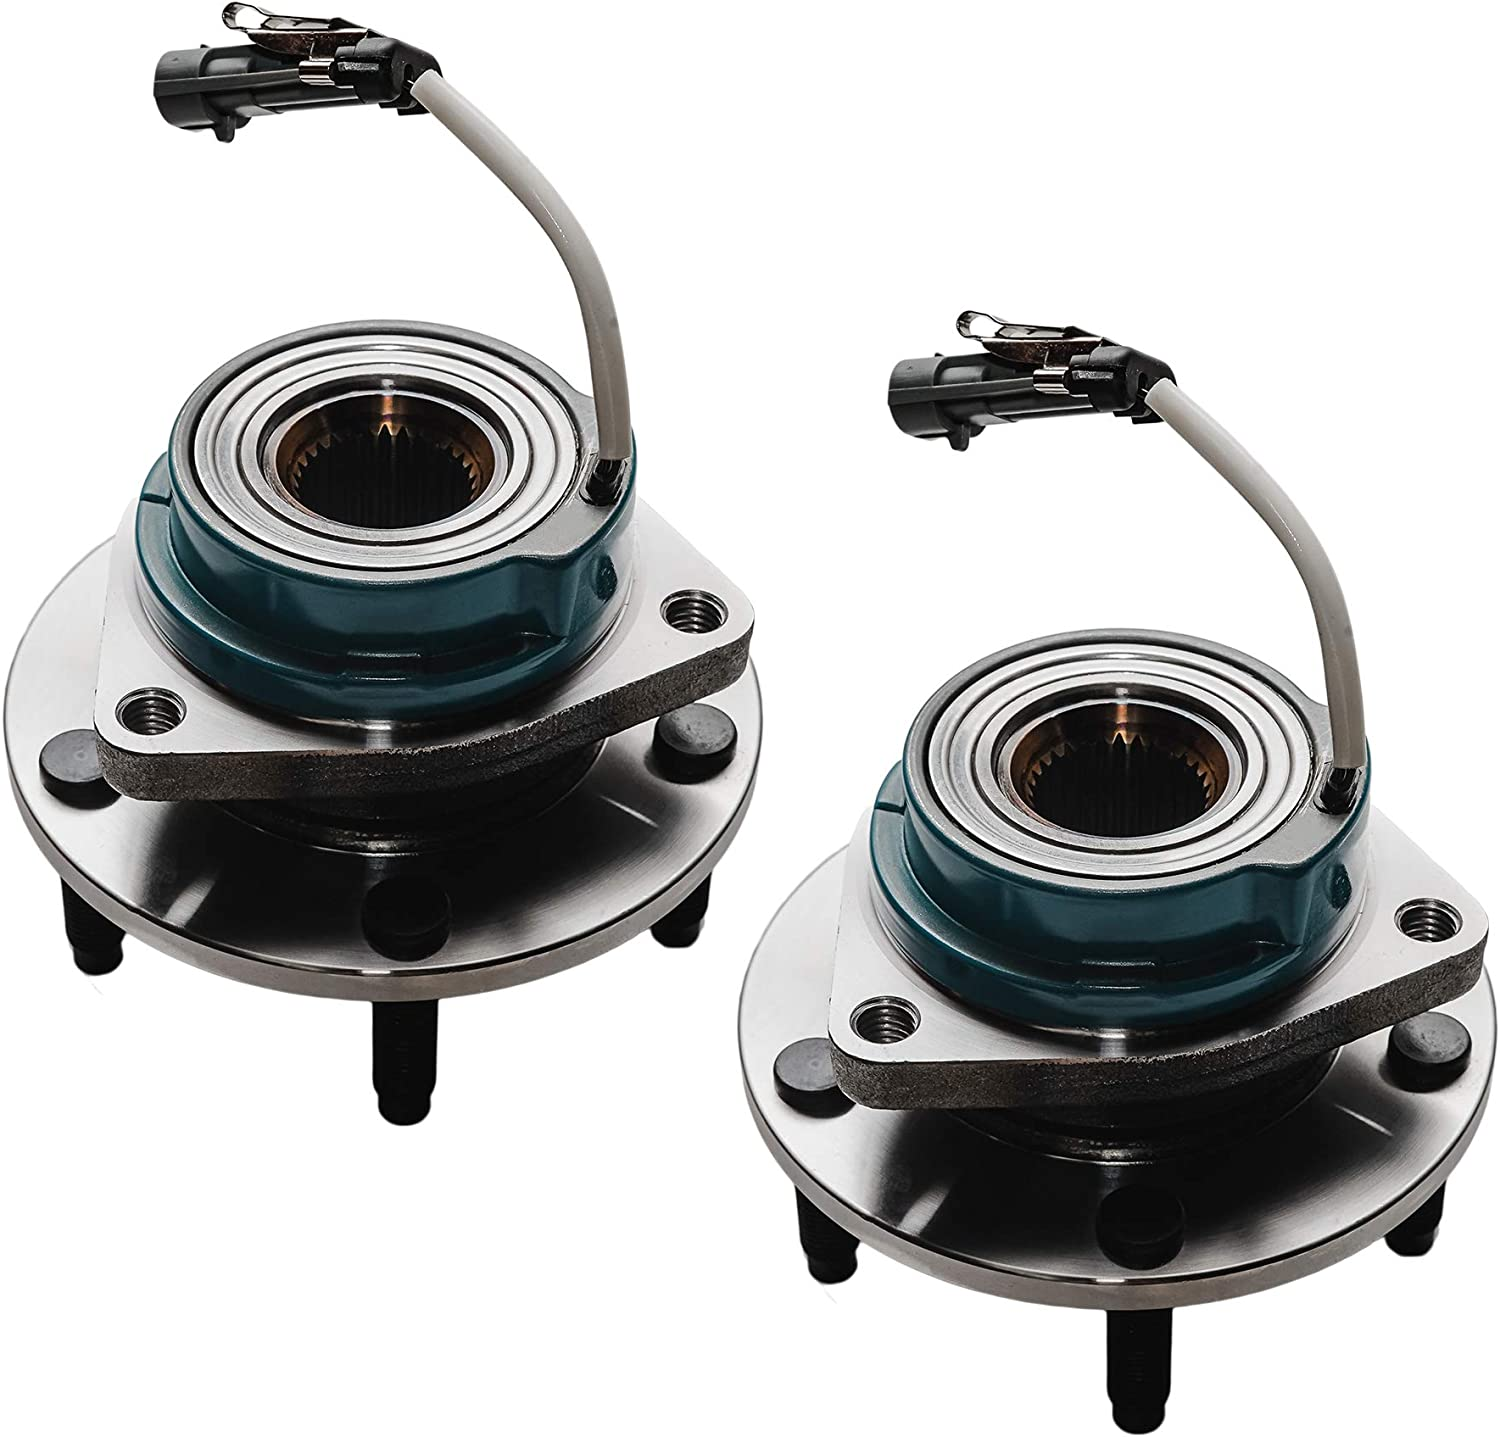 4pc Wheel Bearing Hub Set Front and Rear Wheel Bearing and Hub Assembly for Chevy Corvette Cadillac XLR Detroit Axle